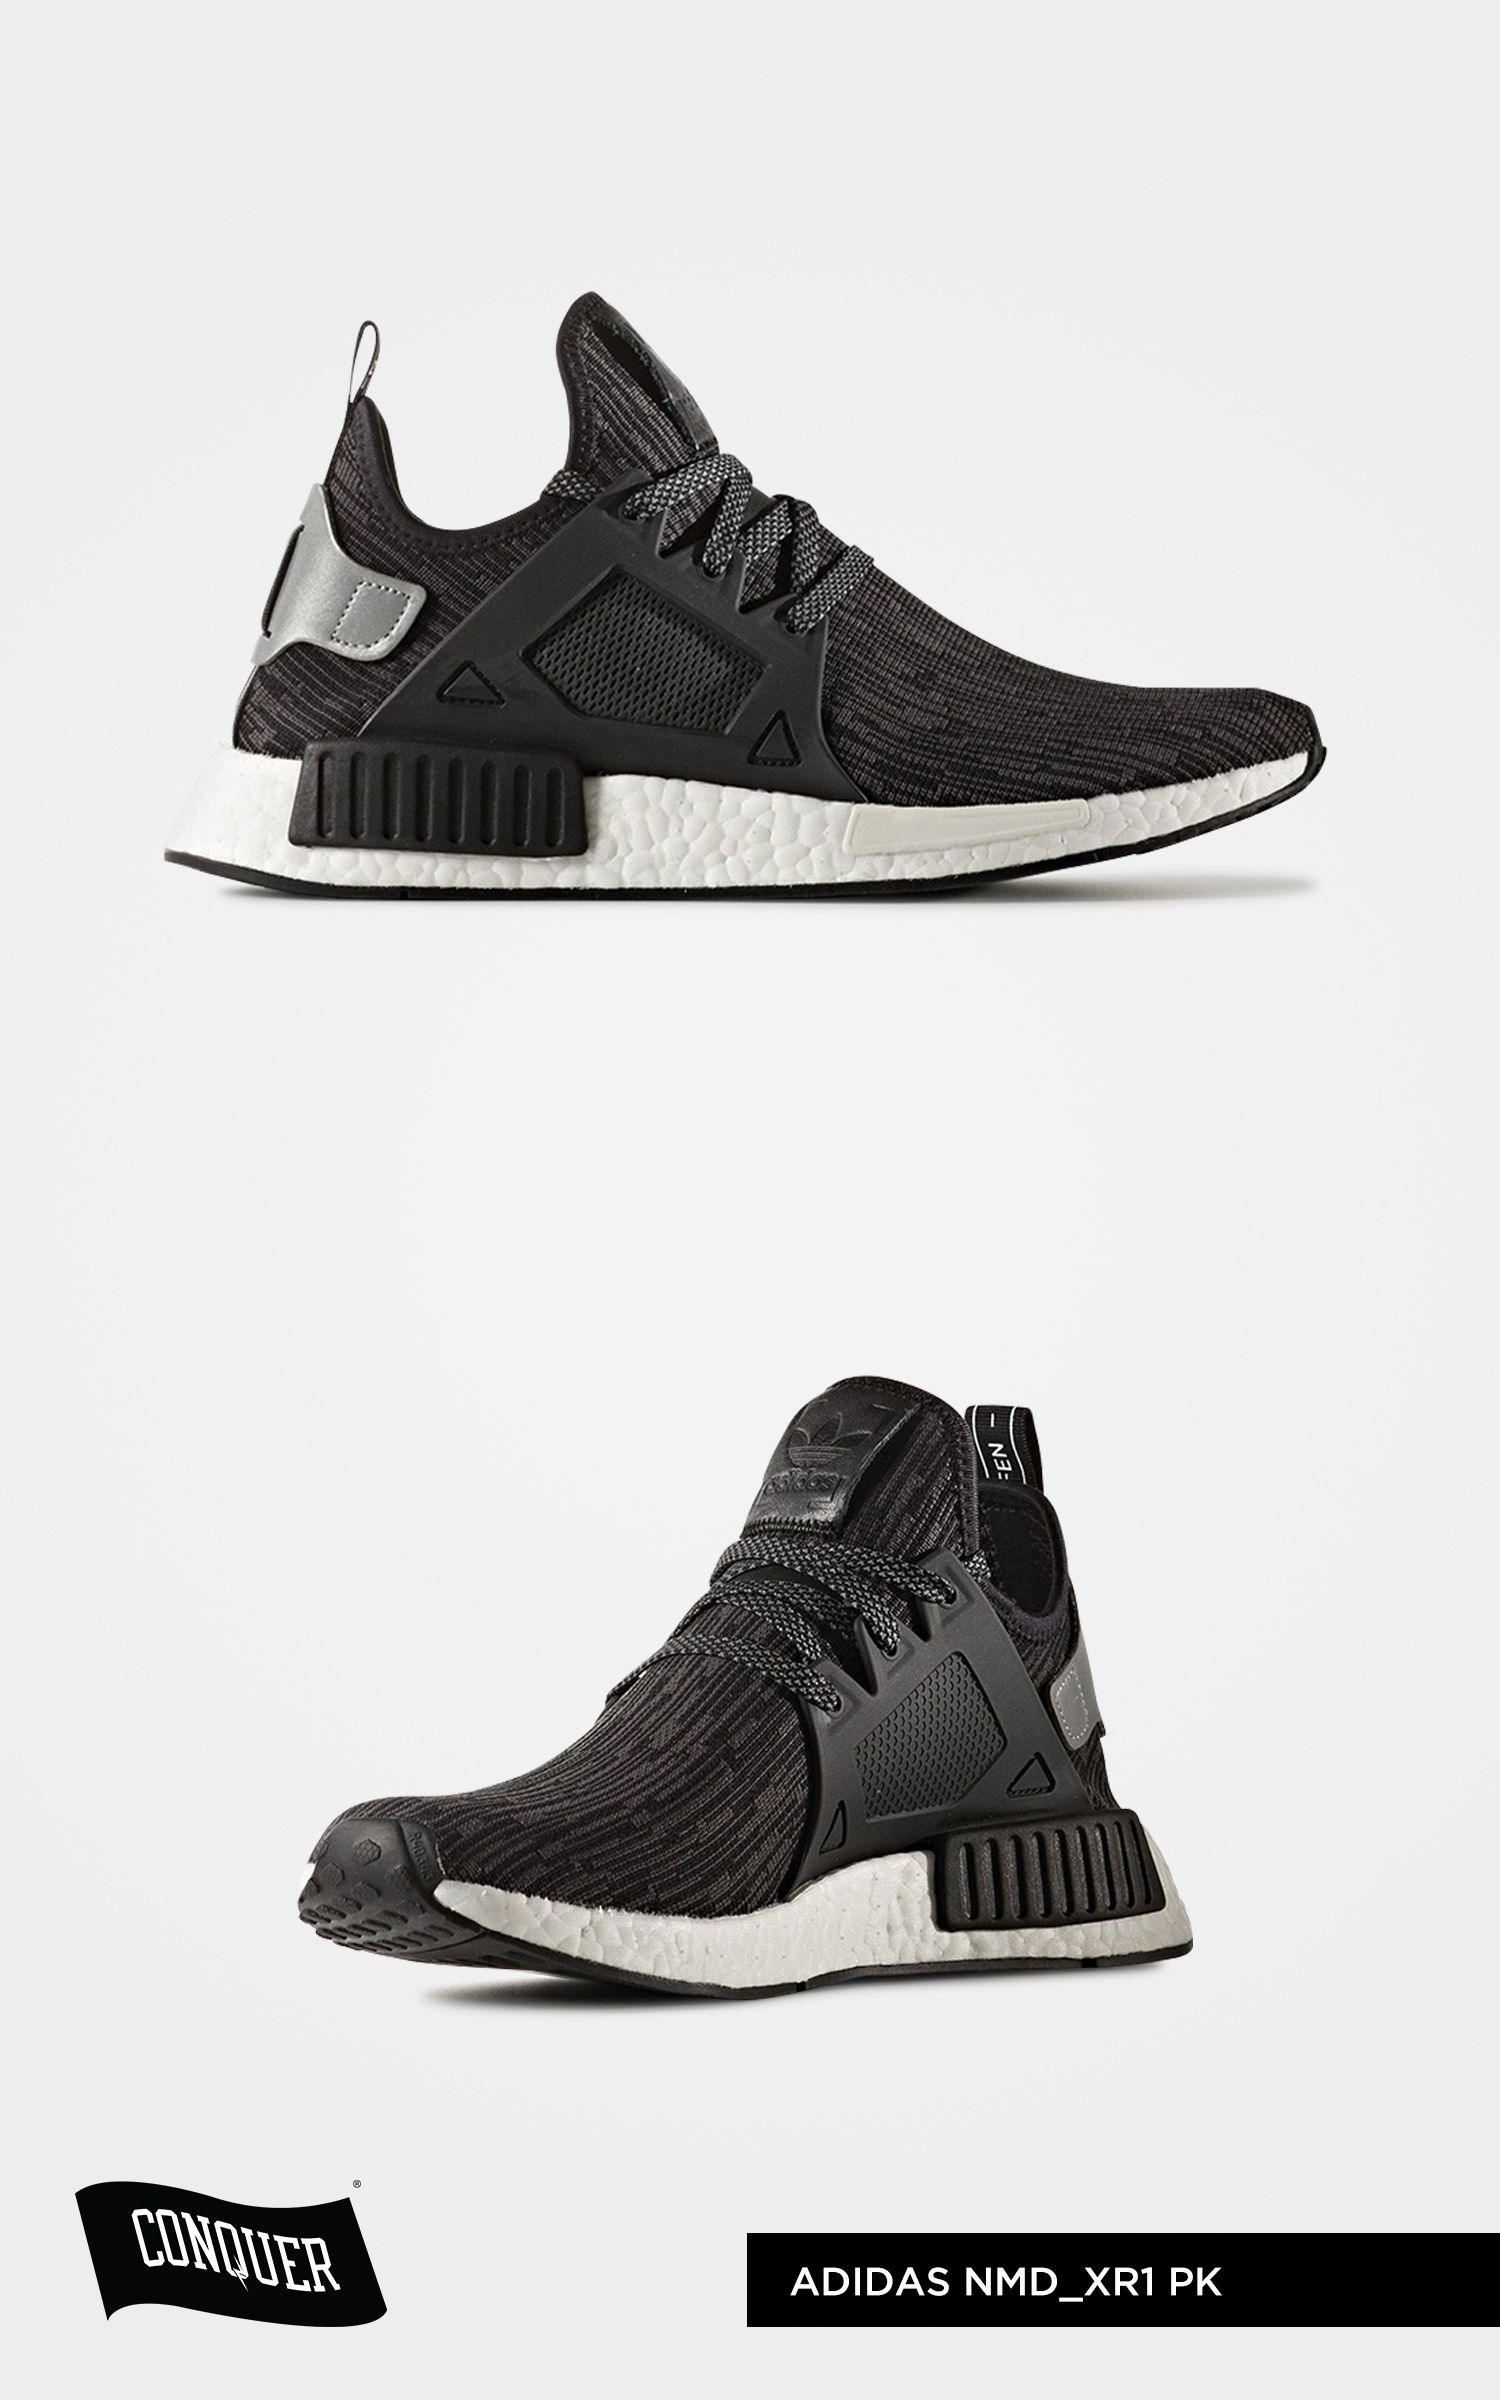 save off a4897 df9bf Adidas NMD_XR1 PK S77195 AED 645 Visit: www.weconquer.me ...